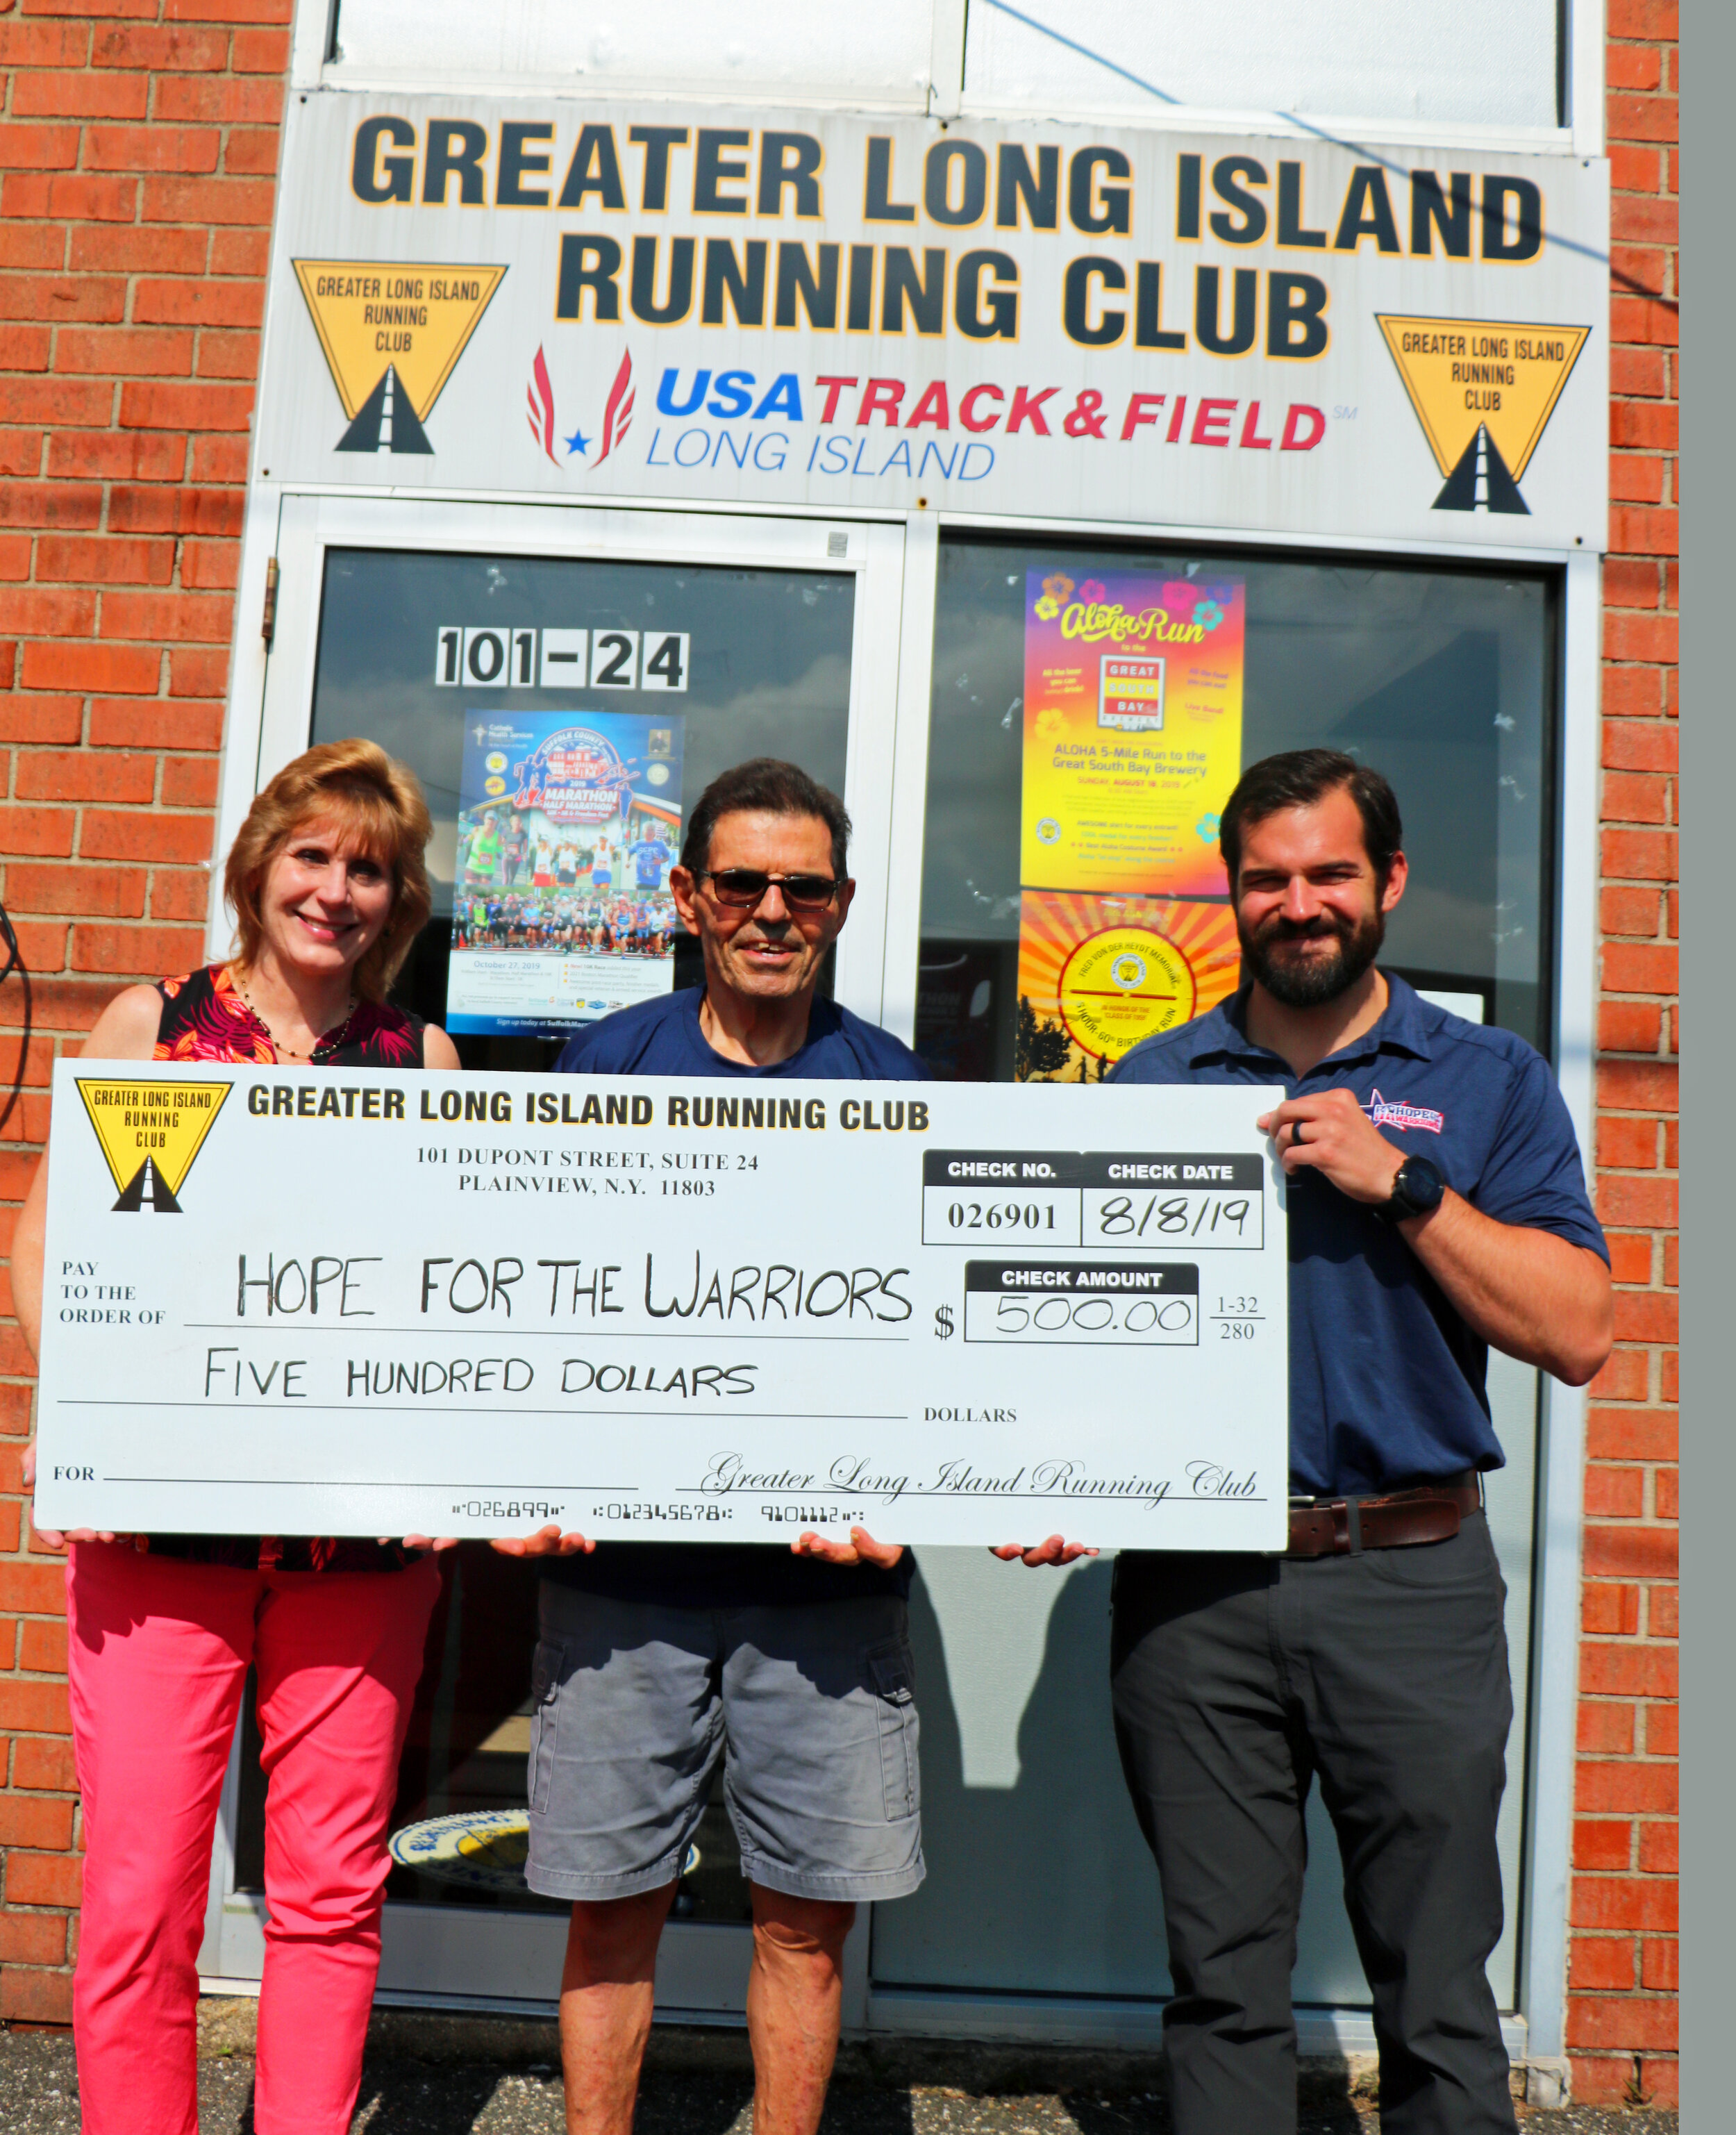 Pictured here, Steve Bartomioli of Hope for the Warriors (C) accepts the GLIRC check from GLIRC Executive Director Sue Fitzpatrick (L) and Greenbelt Trail Race Director Nick Palazzo